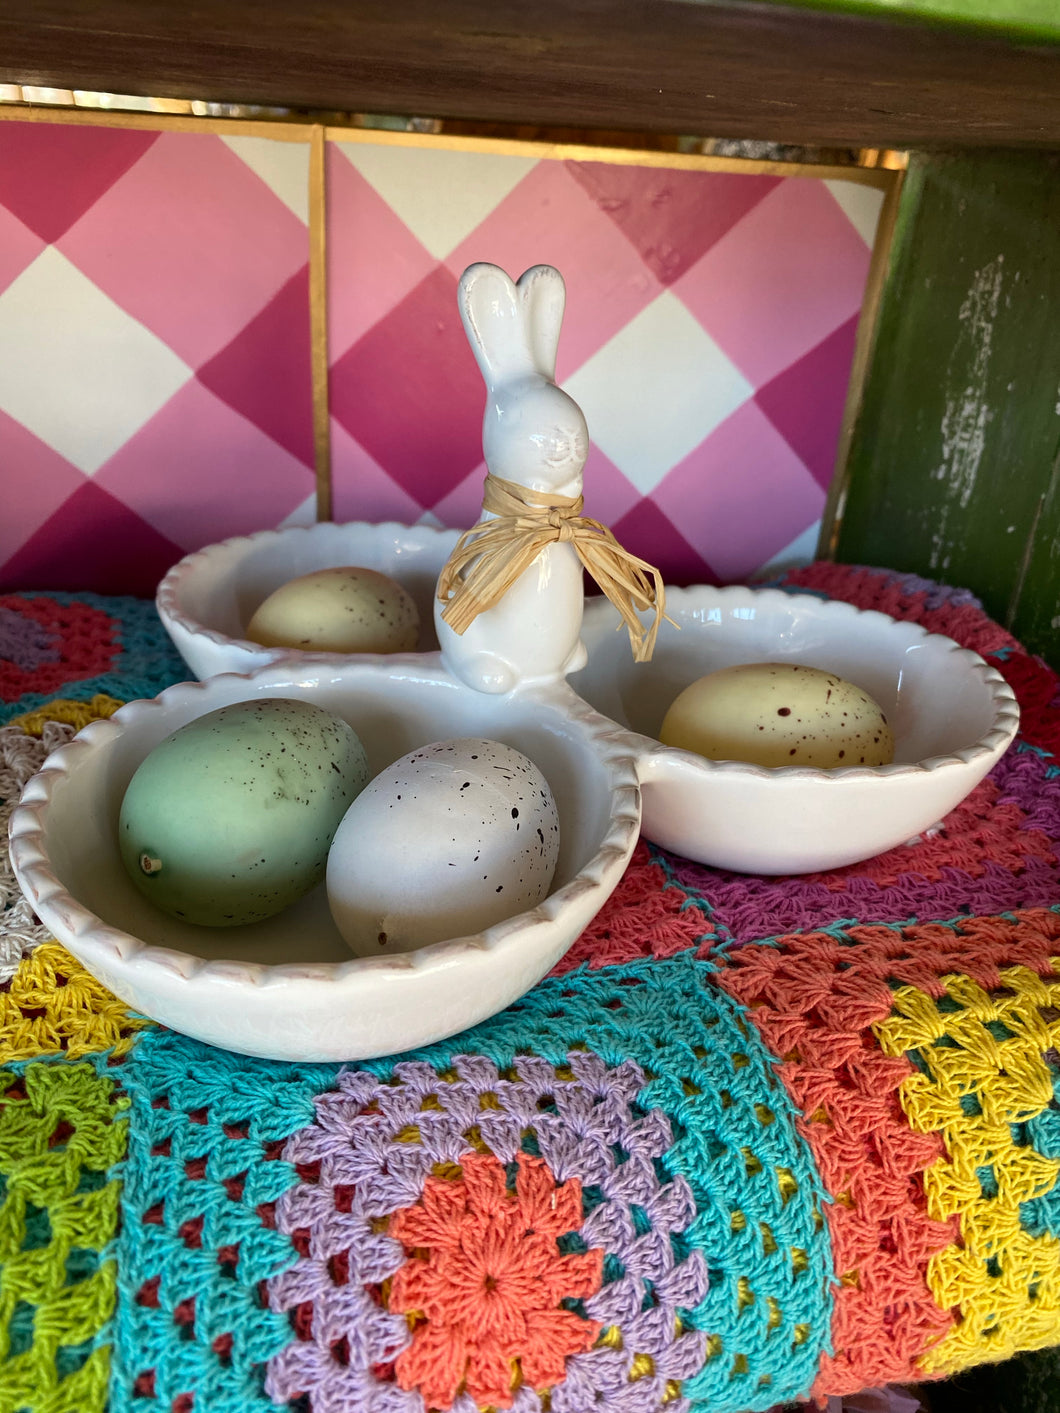 Bunny Candy Dish